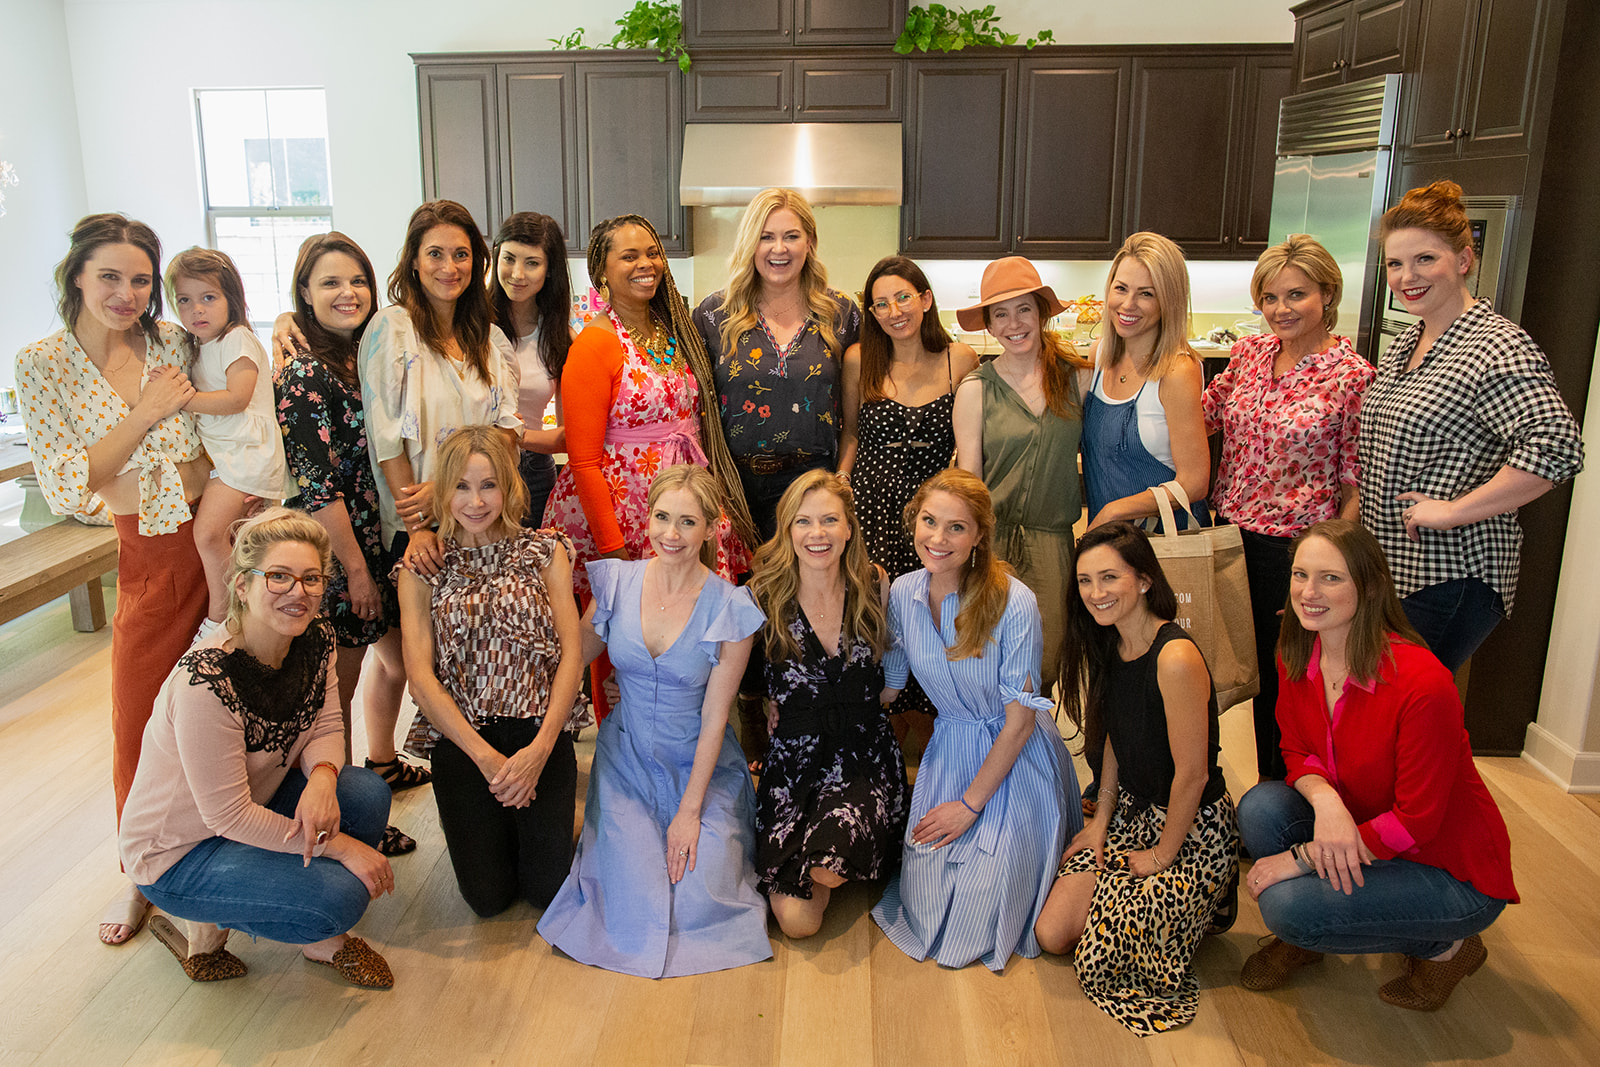 Top Row: Kaitlyn Villasuso and daughter, Kimberly J Brown, Angelique Cabral, Briana Cuoco, Chef Ameera, Amy Lacey, Chrissy Kling, Amy Davidson, Jessica Hall, Karen (Lisa's friend), Caitlin Brandes (Friend of Jessica's). Bottom Row: Kaylene DeVries, Lisa Breckenridge, me, Sarah Jane Morris, Virginia Williams, Nicole Levine, Casey Henricks.